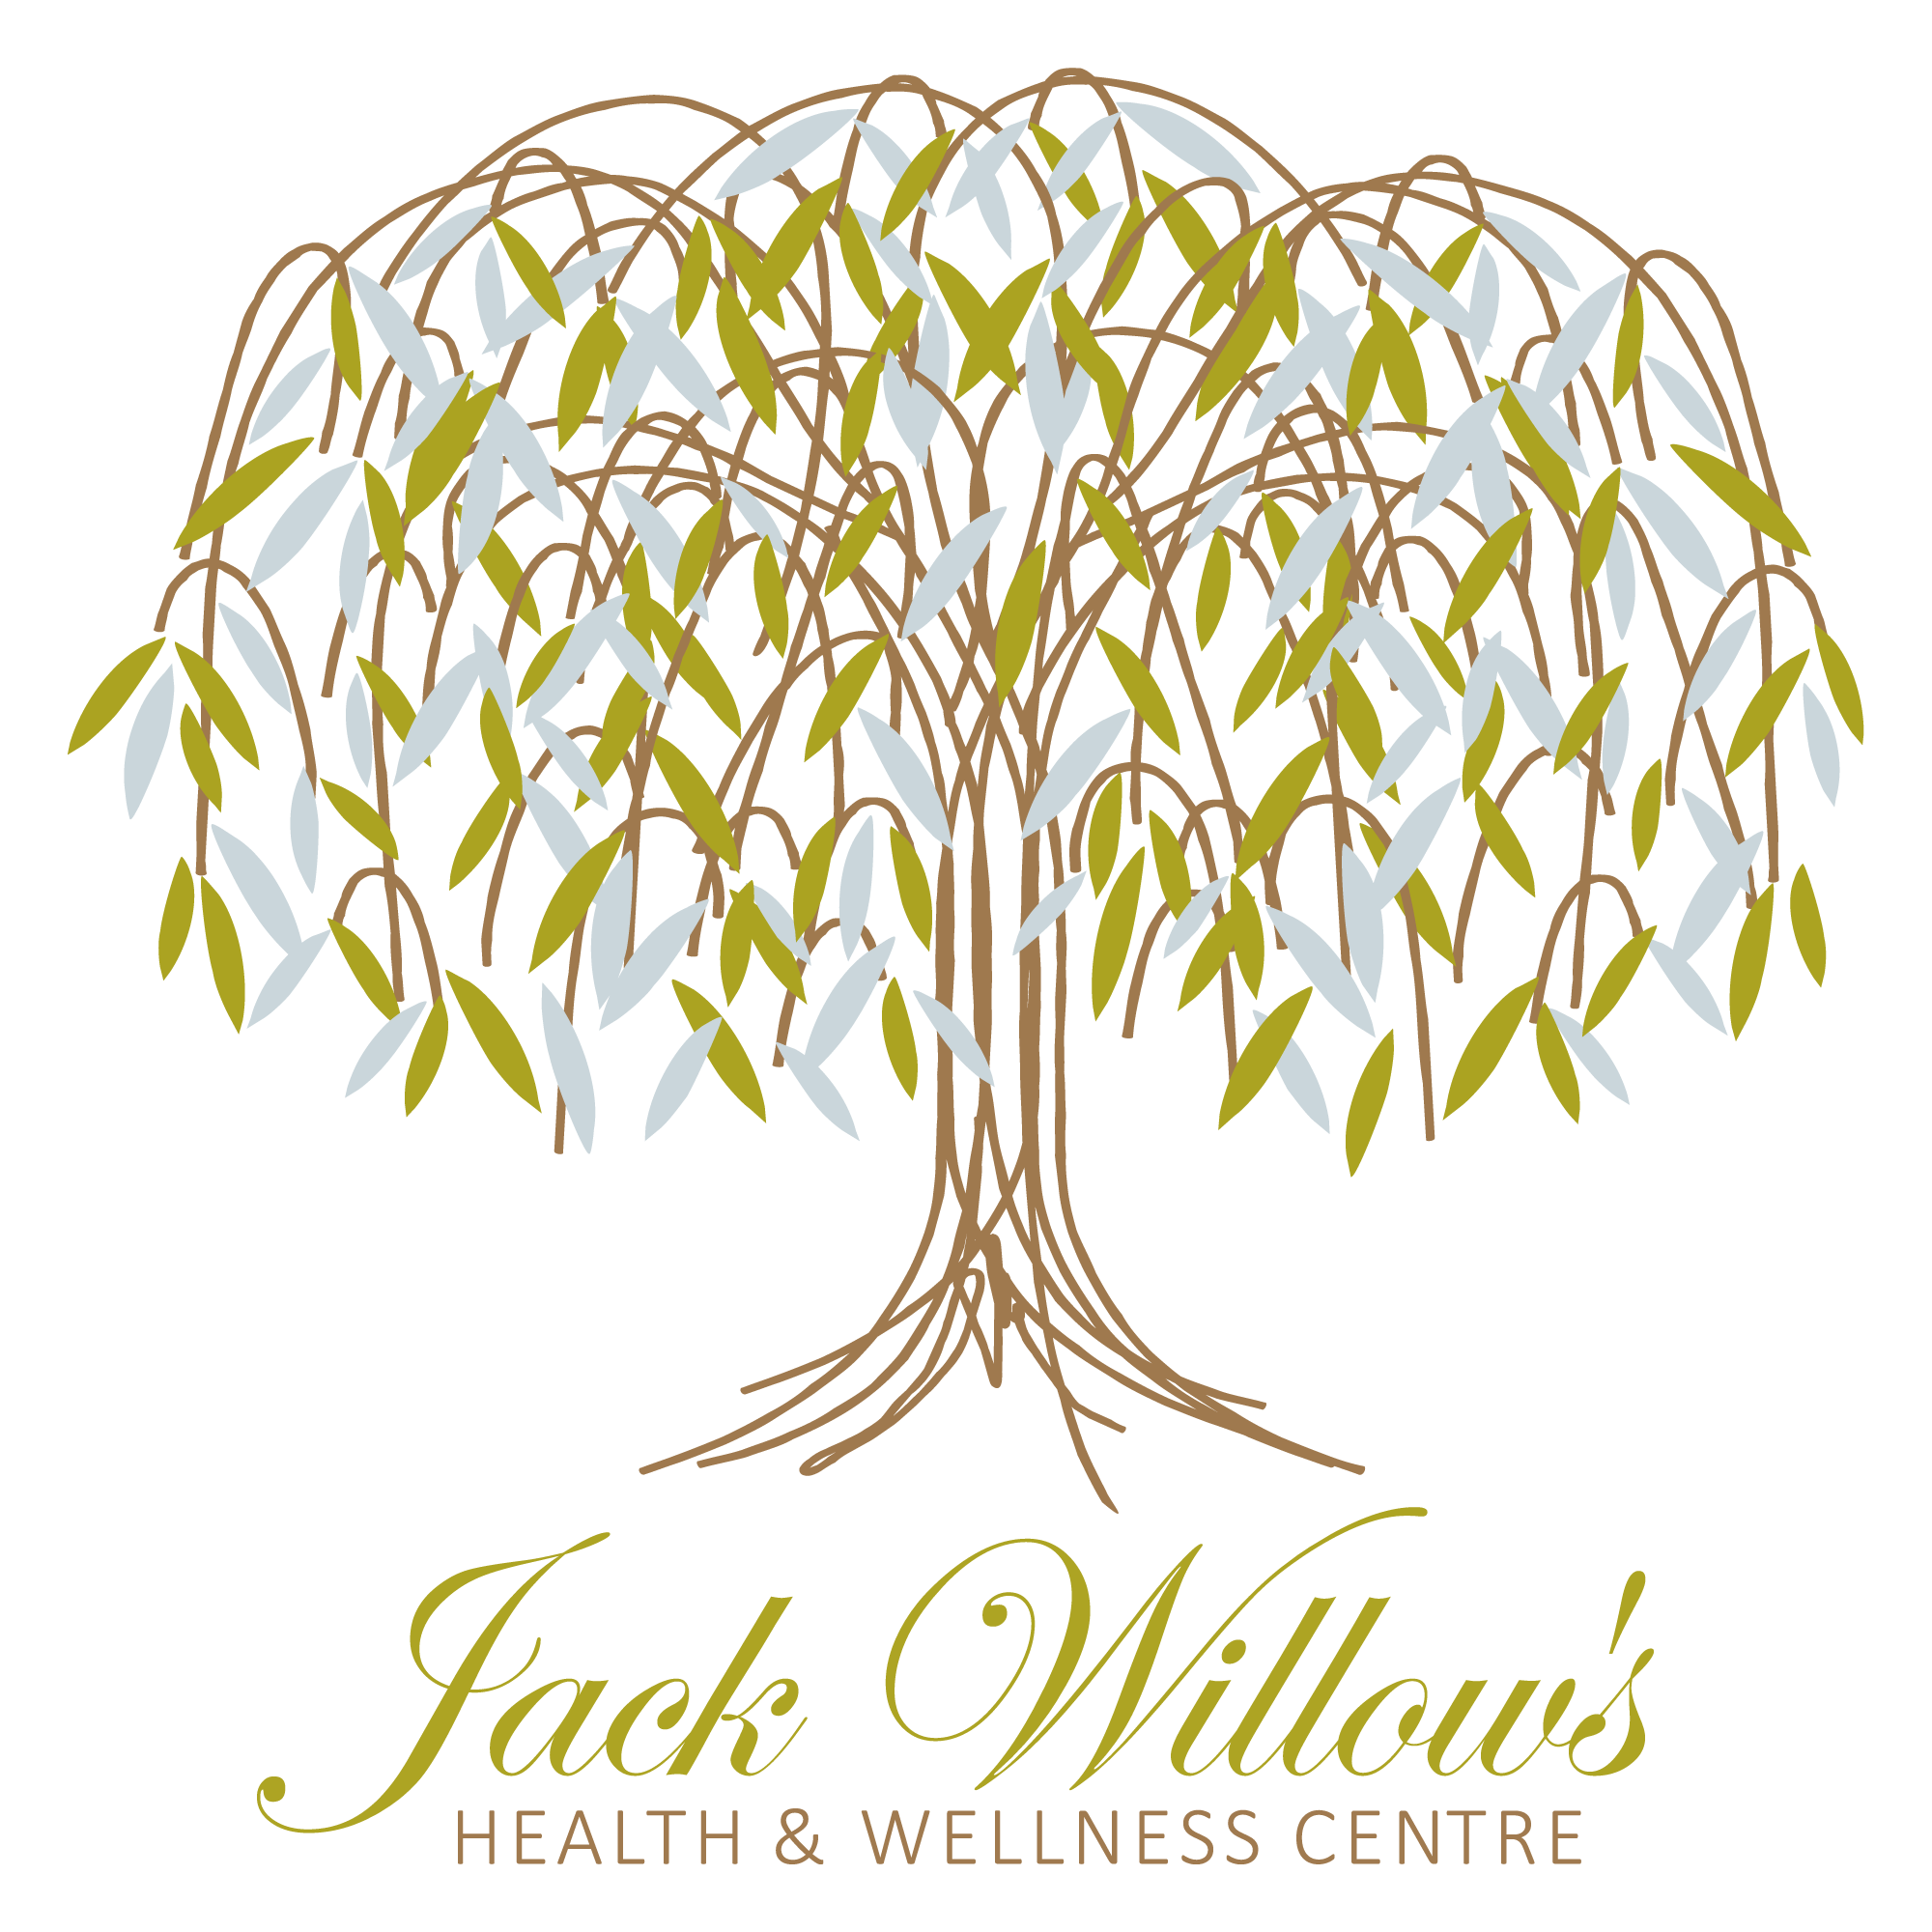 Jack Willows Health & Wellness Centre